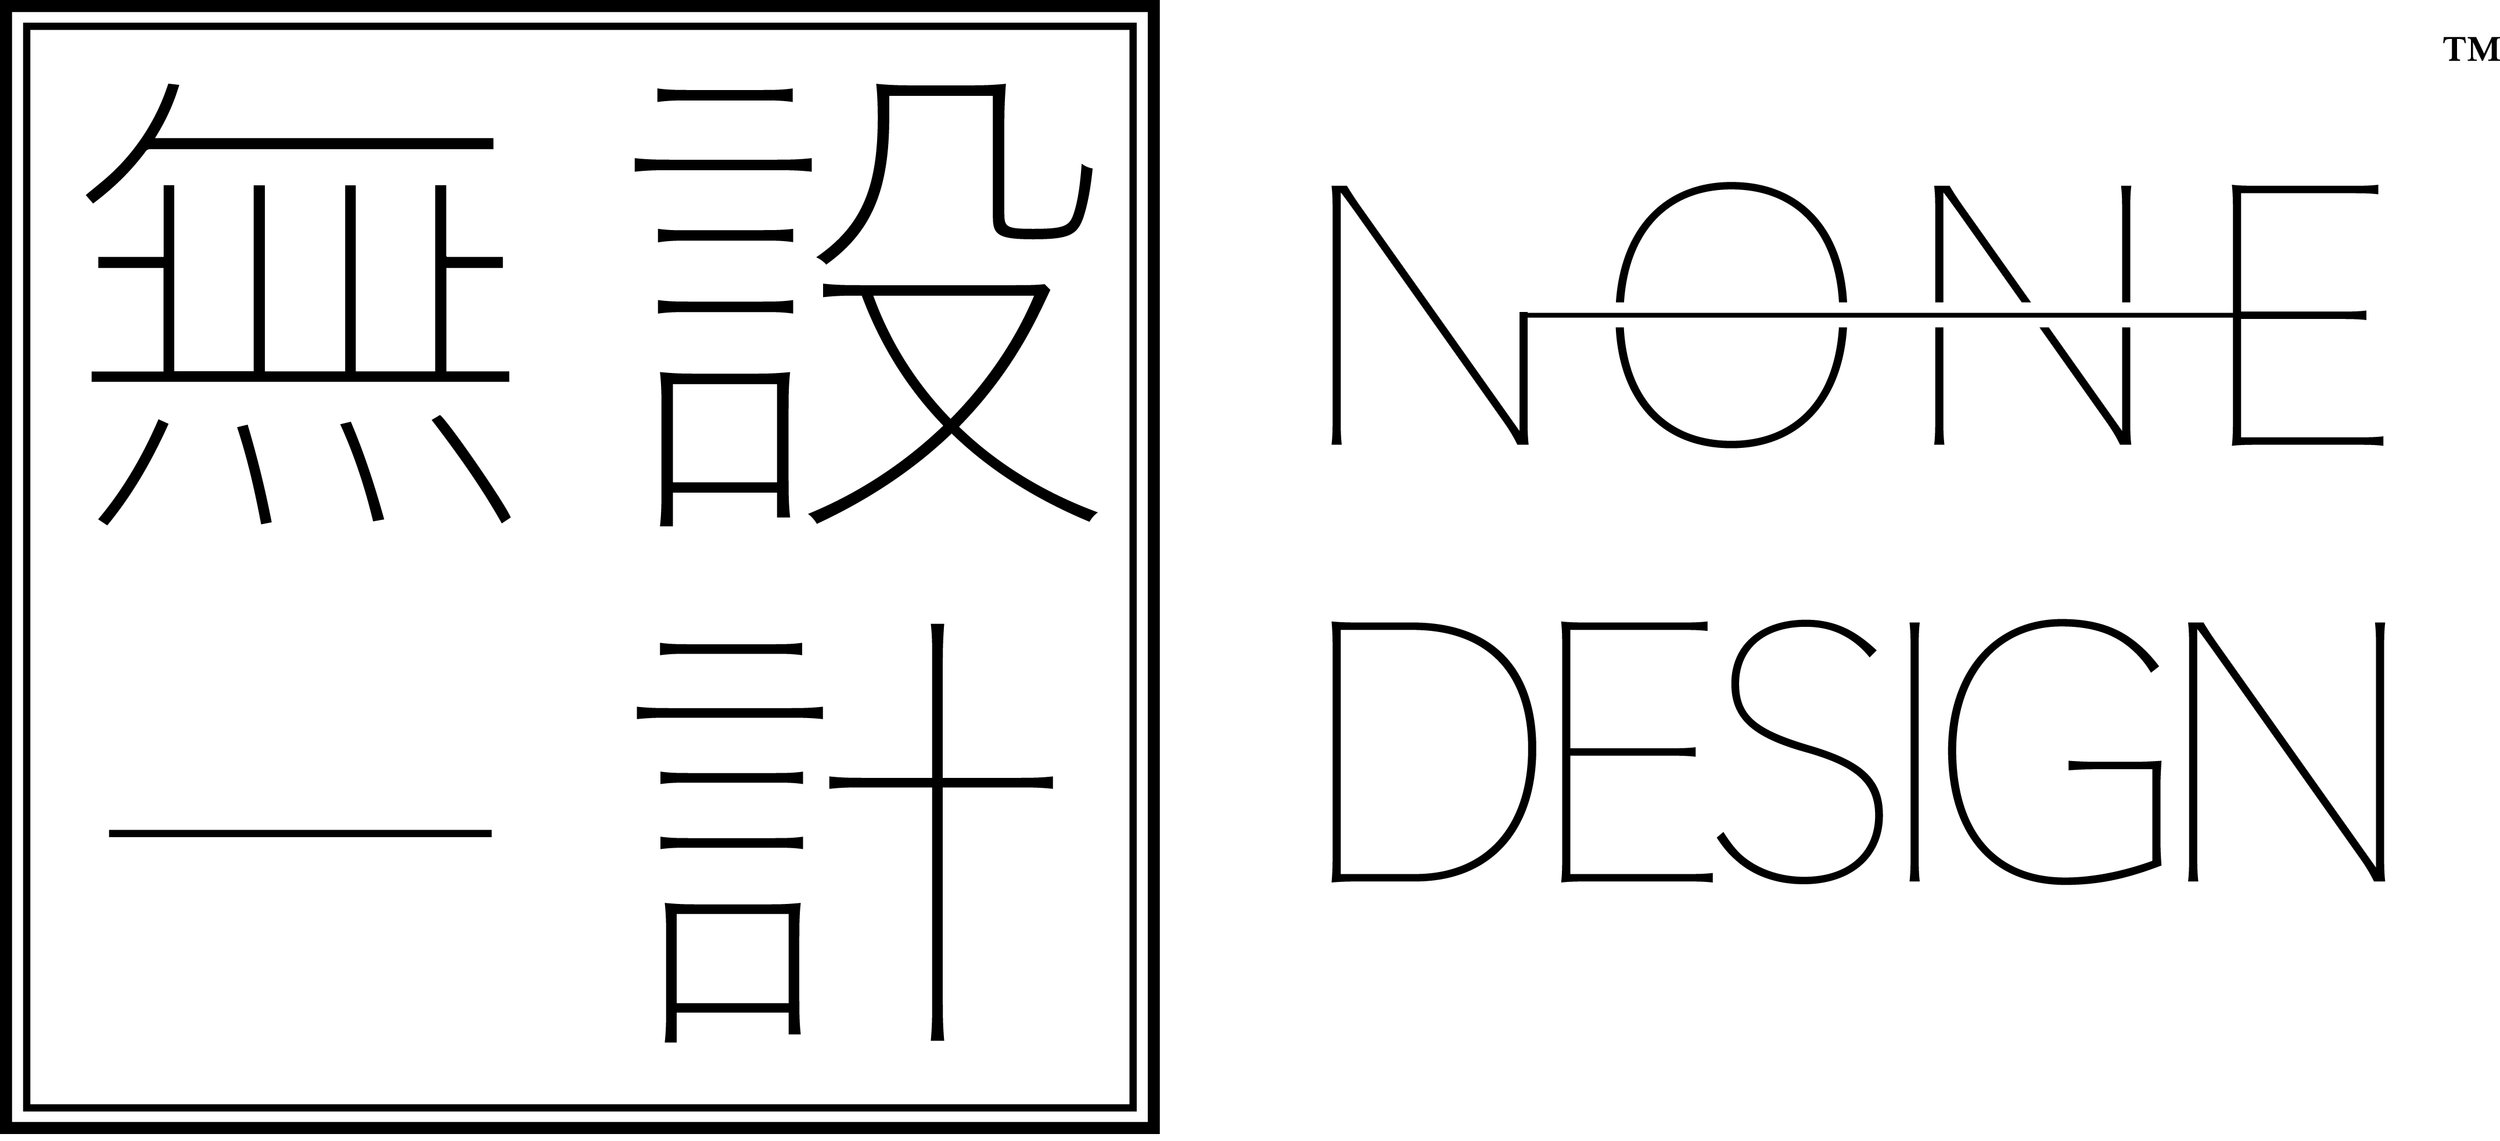 The None Design - Shenyang None Design and Decoration Co., Ltd is a customer product and interior design firm located in Shenyang, China. Founded in 2016 by Joe Tian, Adeline Hu and Chen Liu.The previous of this firm is None Design Studio.On the end of the year, 2018 None Design was merger and acquisition by Shanghai D-Touch Industrial Co., Ltd.